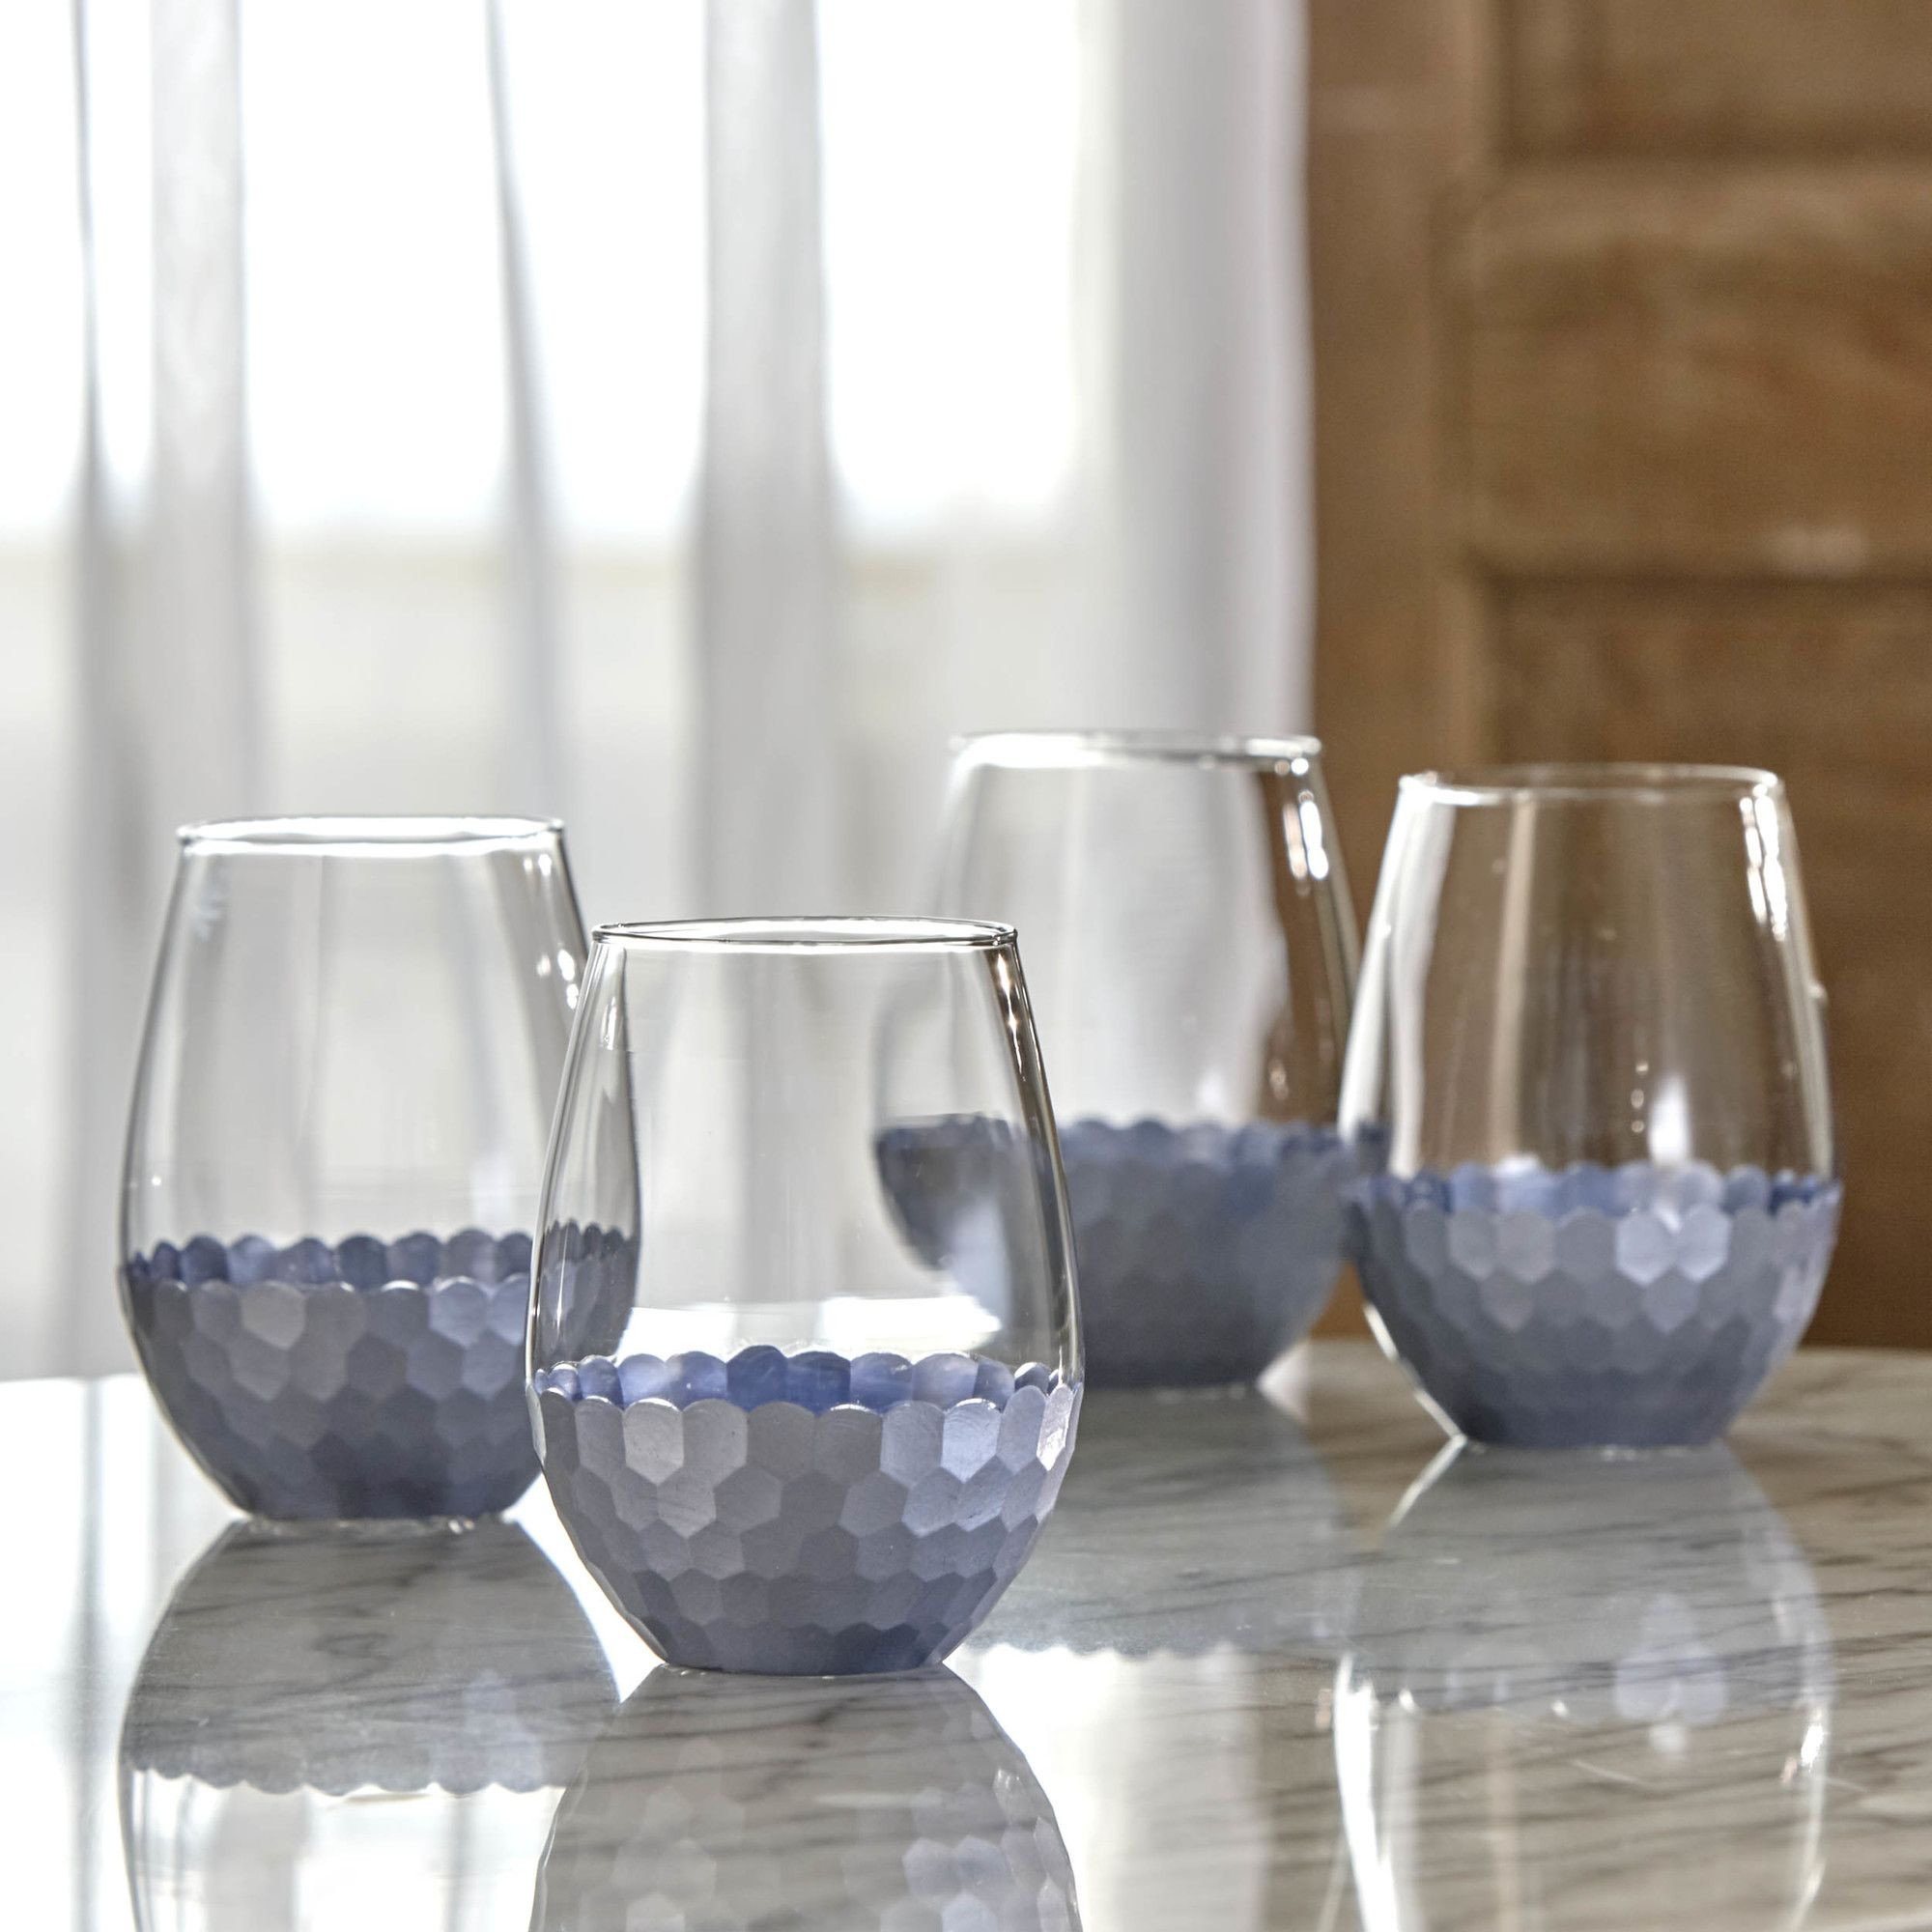 14 Wonderful Waterford Lismore Sapphire Vase 2021 free download waterford lismore sapphire vase of features hand wash made of glass product type wine tumbler within products